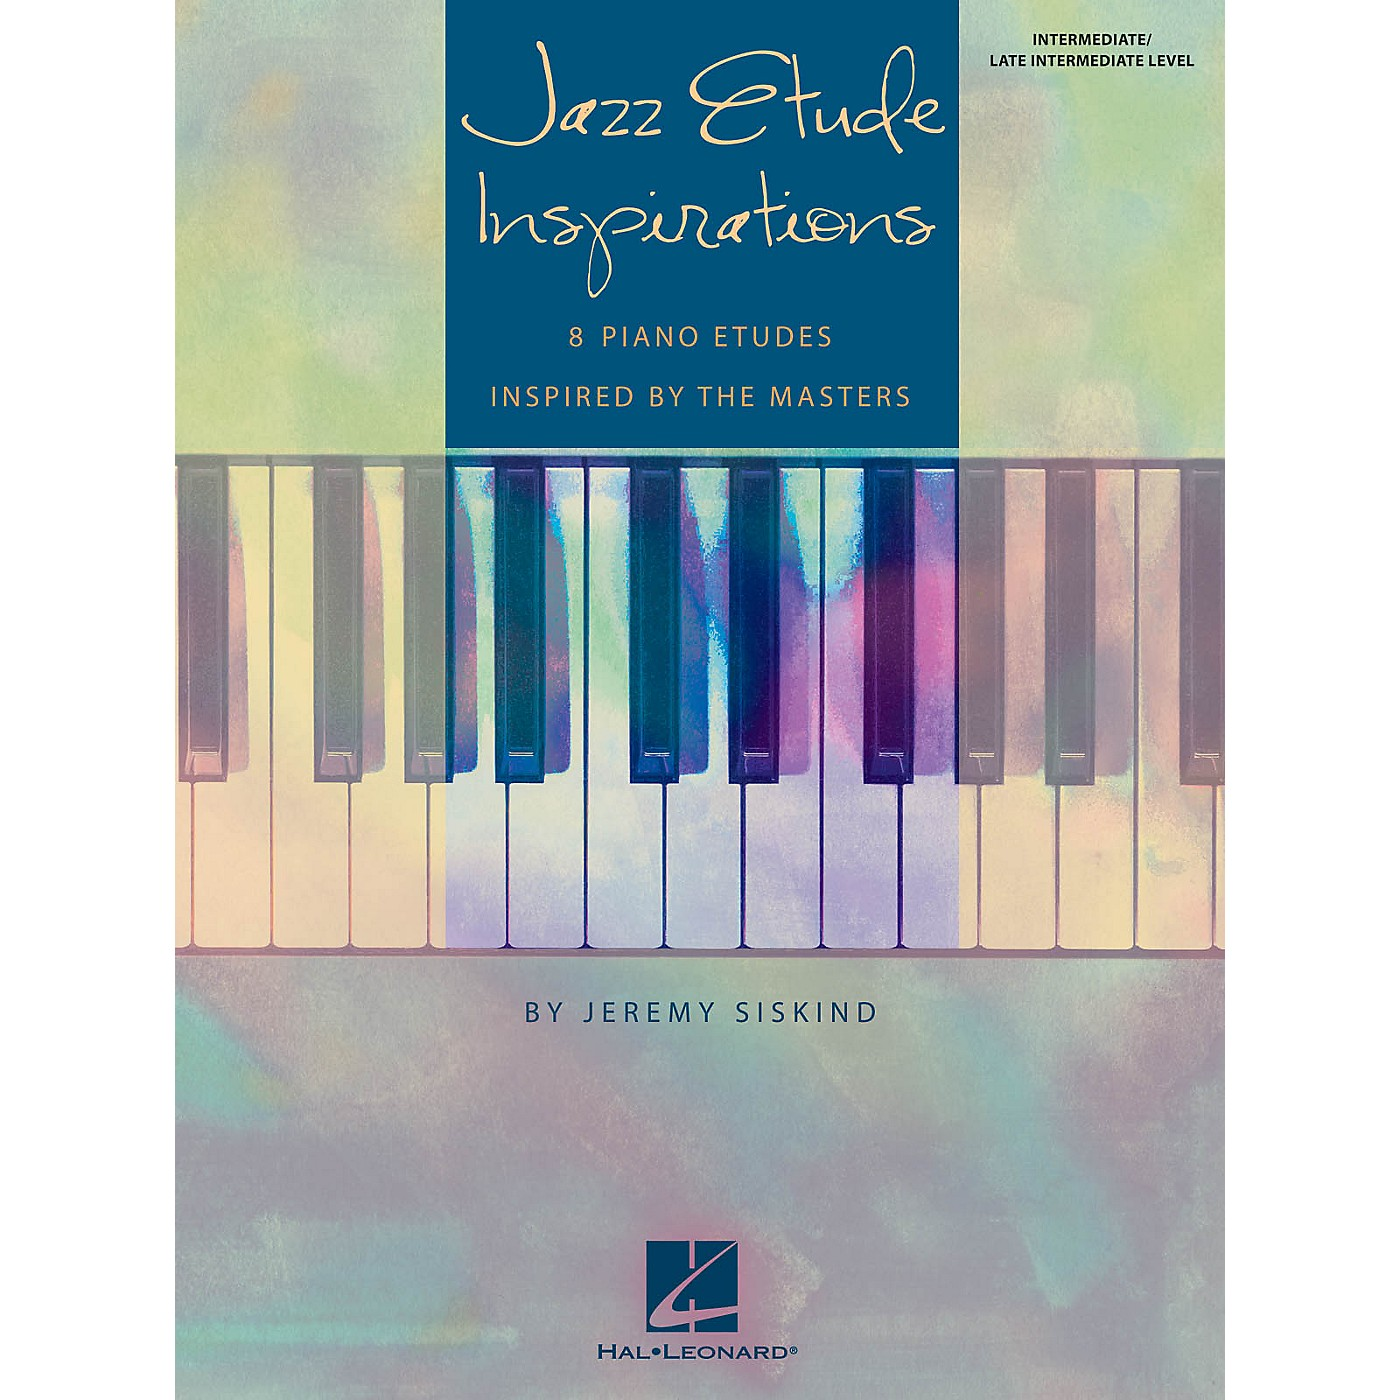 Hal Leonard Jazz Etude Inspirations Educational Piano Solo Book by Jeremy Siskind (Level Inter to Late Intermedi) thumbnail